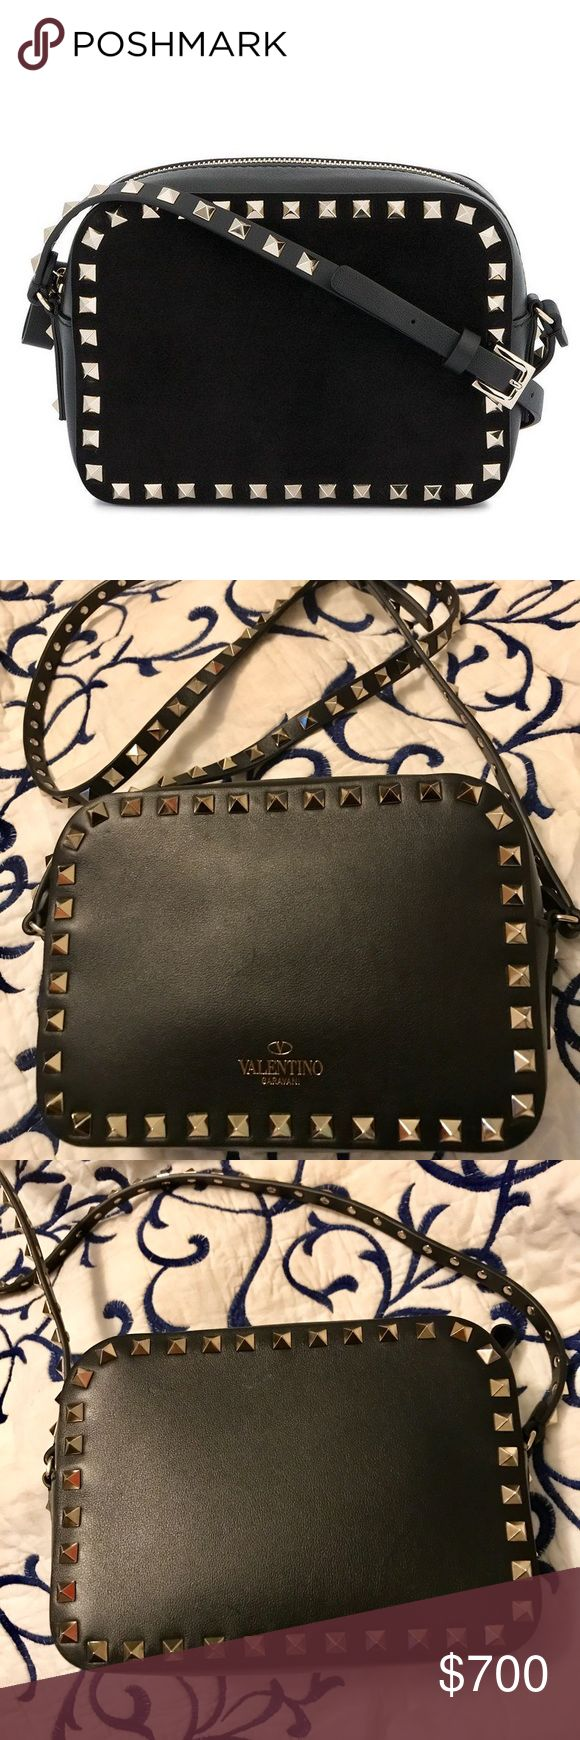 Valentino Garavani rockstud crossbody bag Small black leather crossbody bag with signature gold hardware. 💯 authentic and like new condition. Comes with care card and replacement studs. No dust bag included Valentino Garavani Bags Crossbody Bags